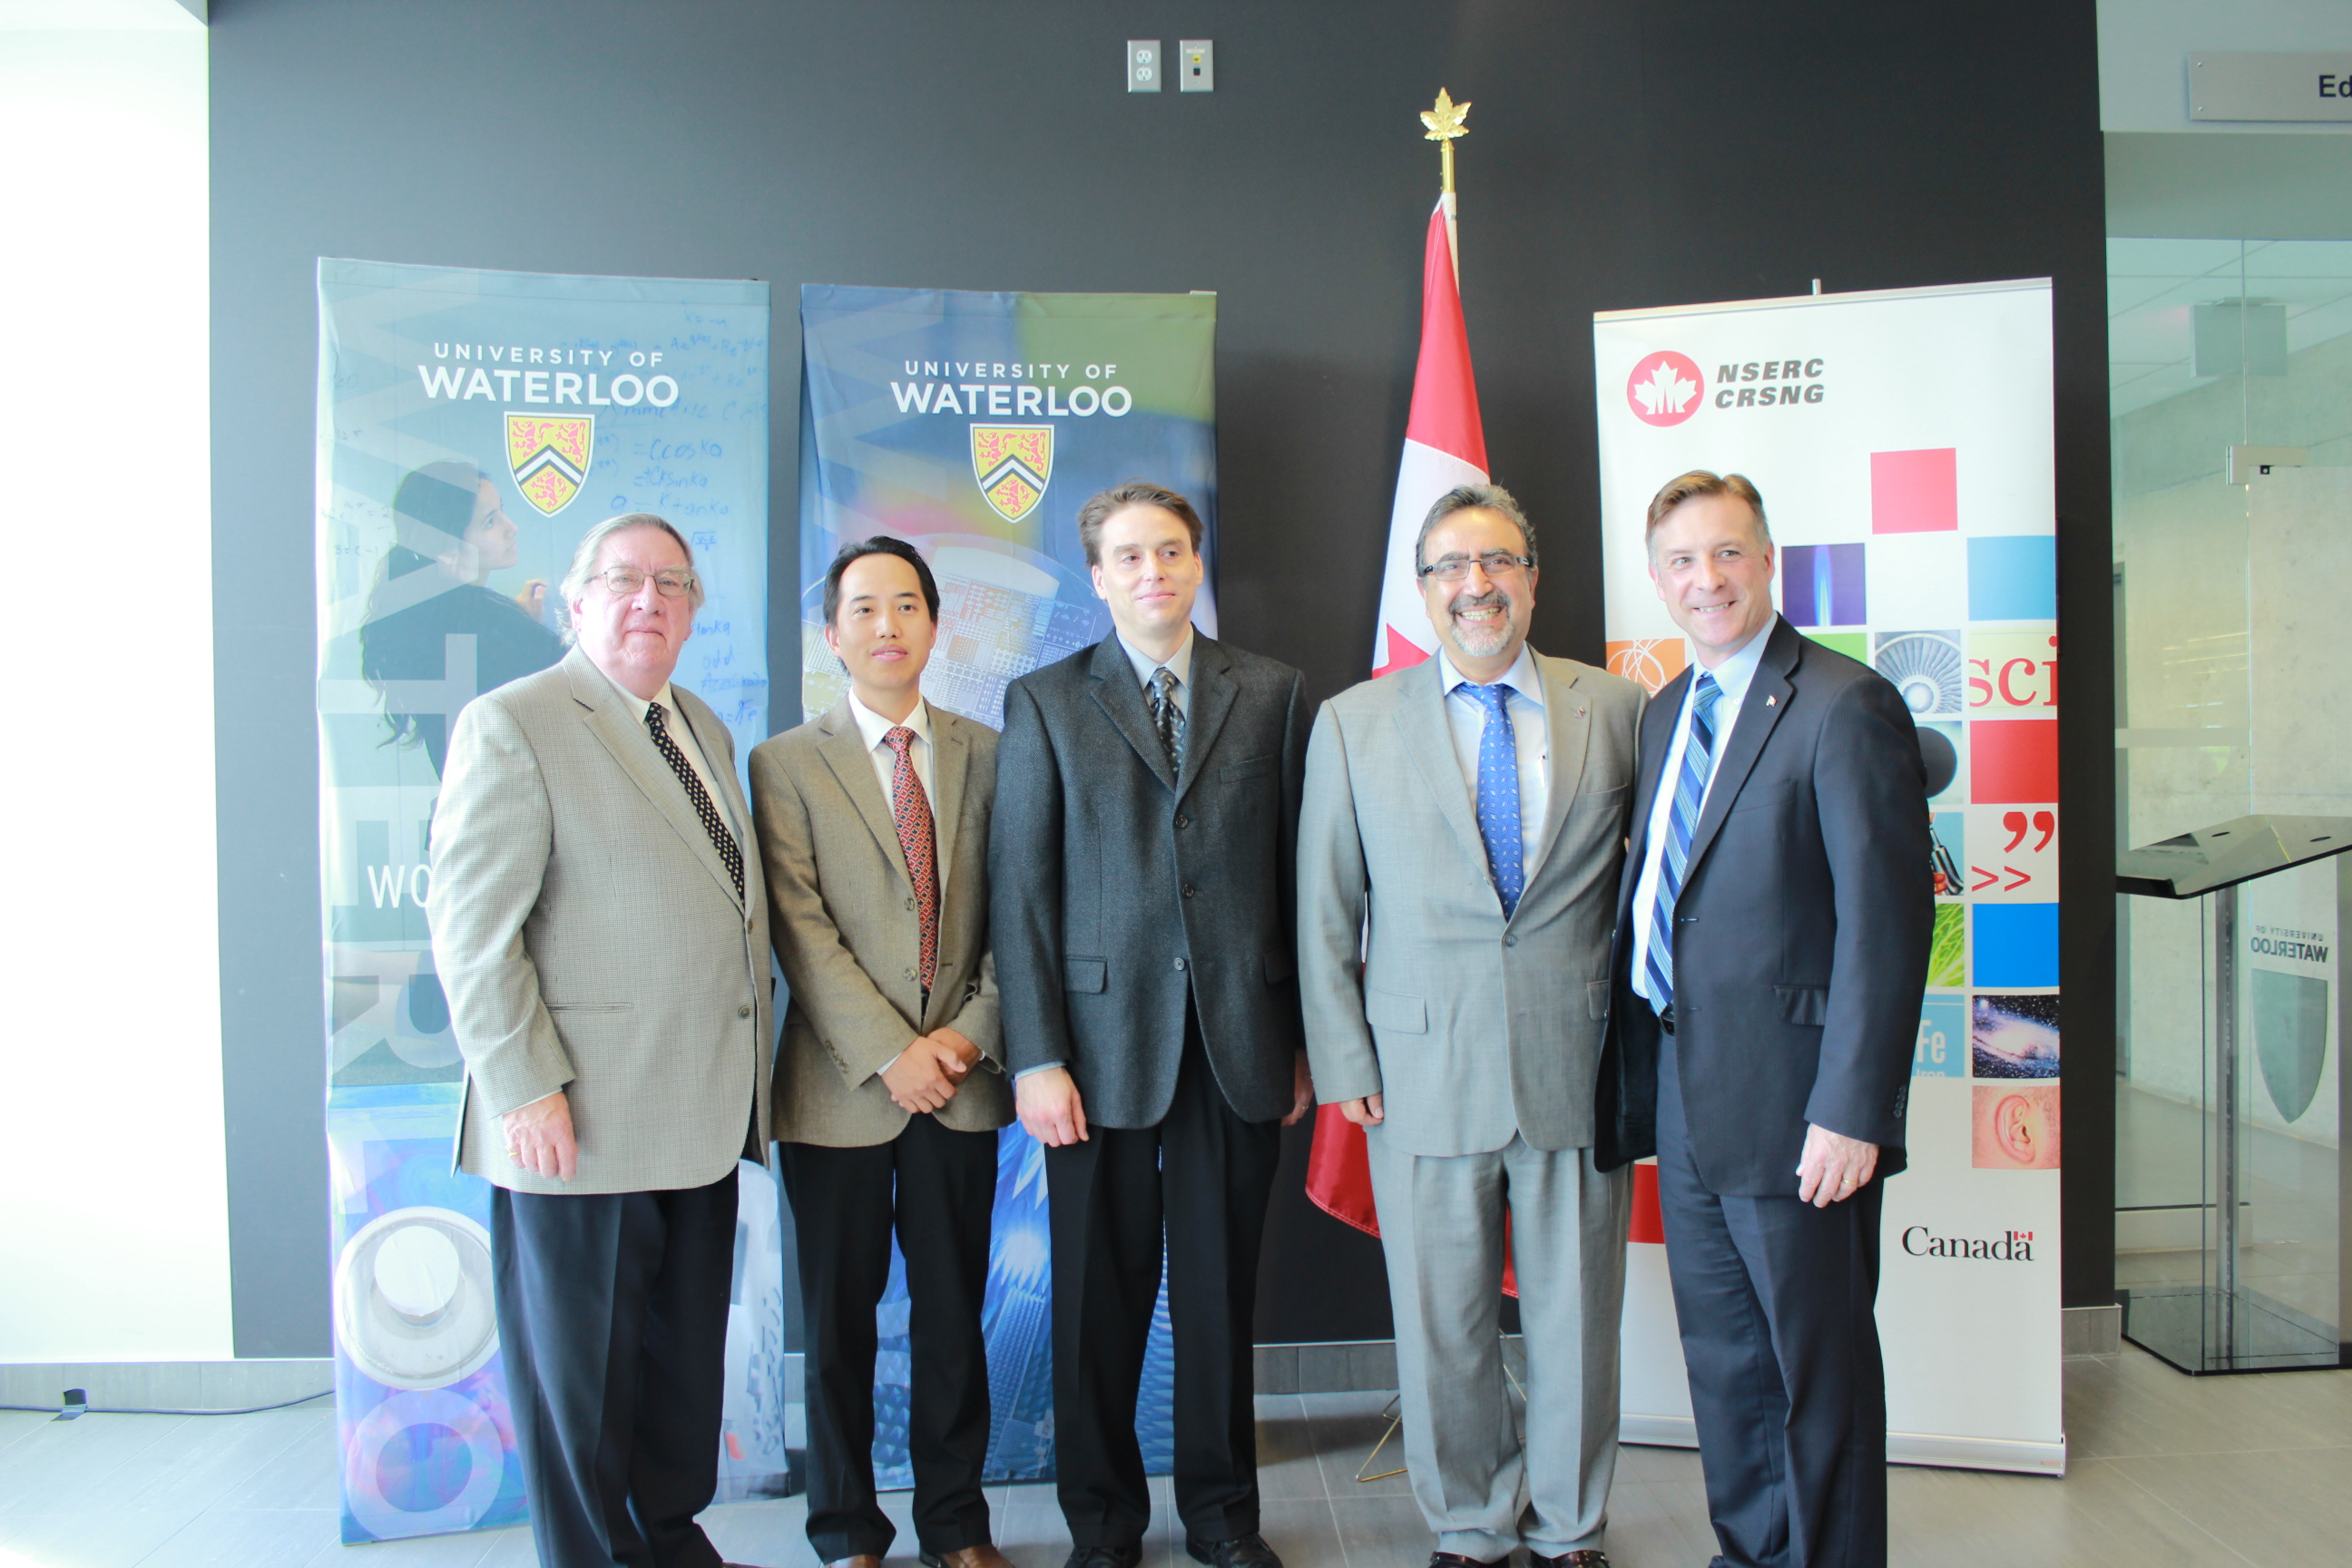 Zongwei Chen and John Watrous with Vice-President George Dixon, Kitchener-Waterloo MP Peter Braid, President Hamdullapur